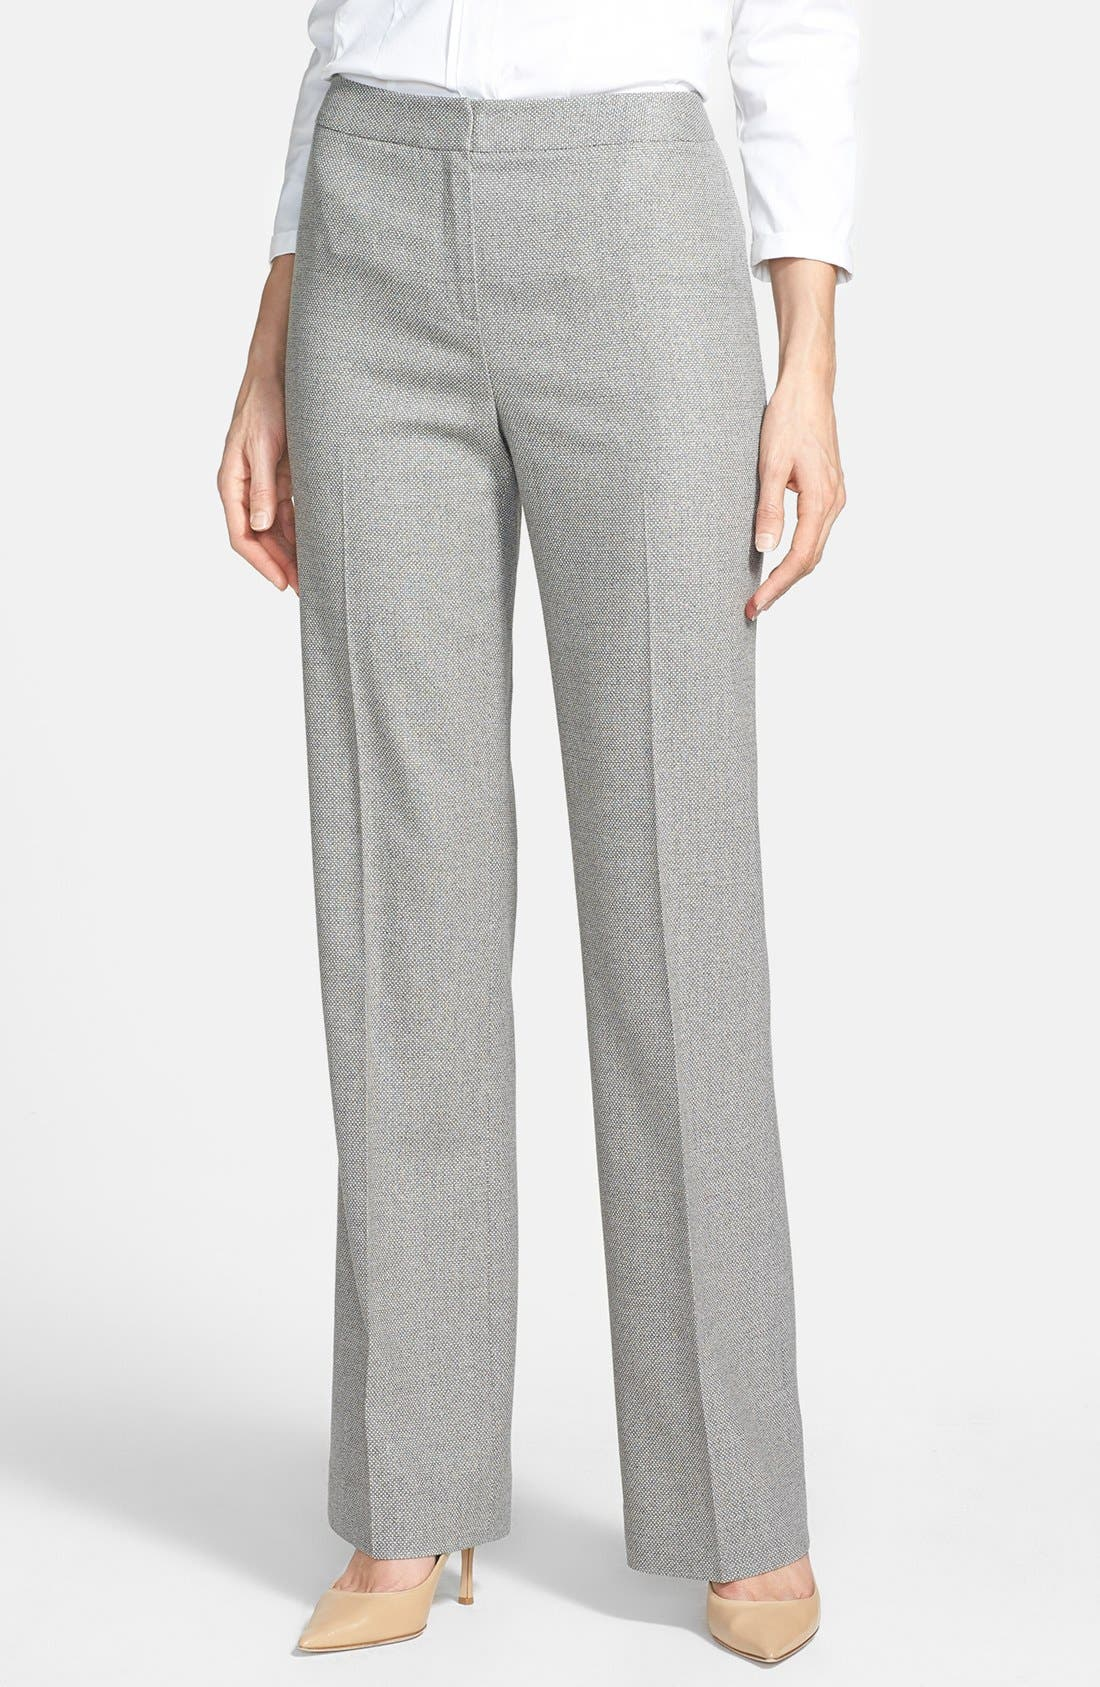 Alternate Image 1 Selected - Lafayette 148 New York Silk Blend Pants